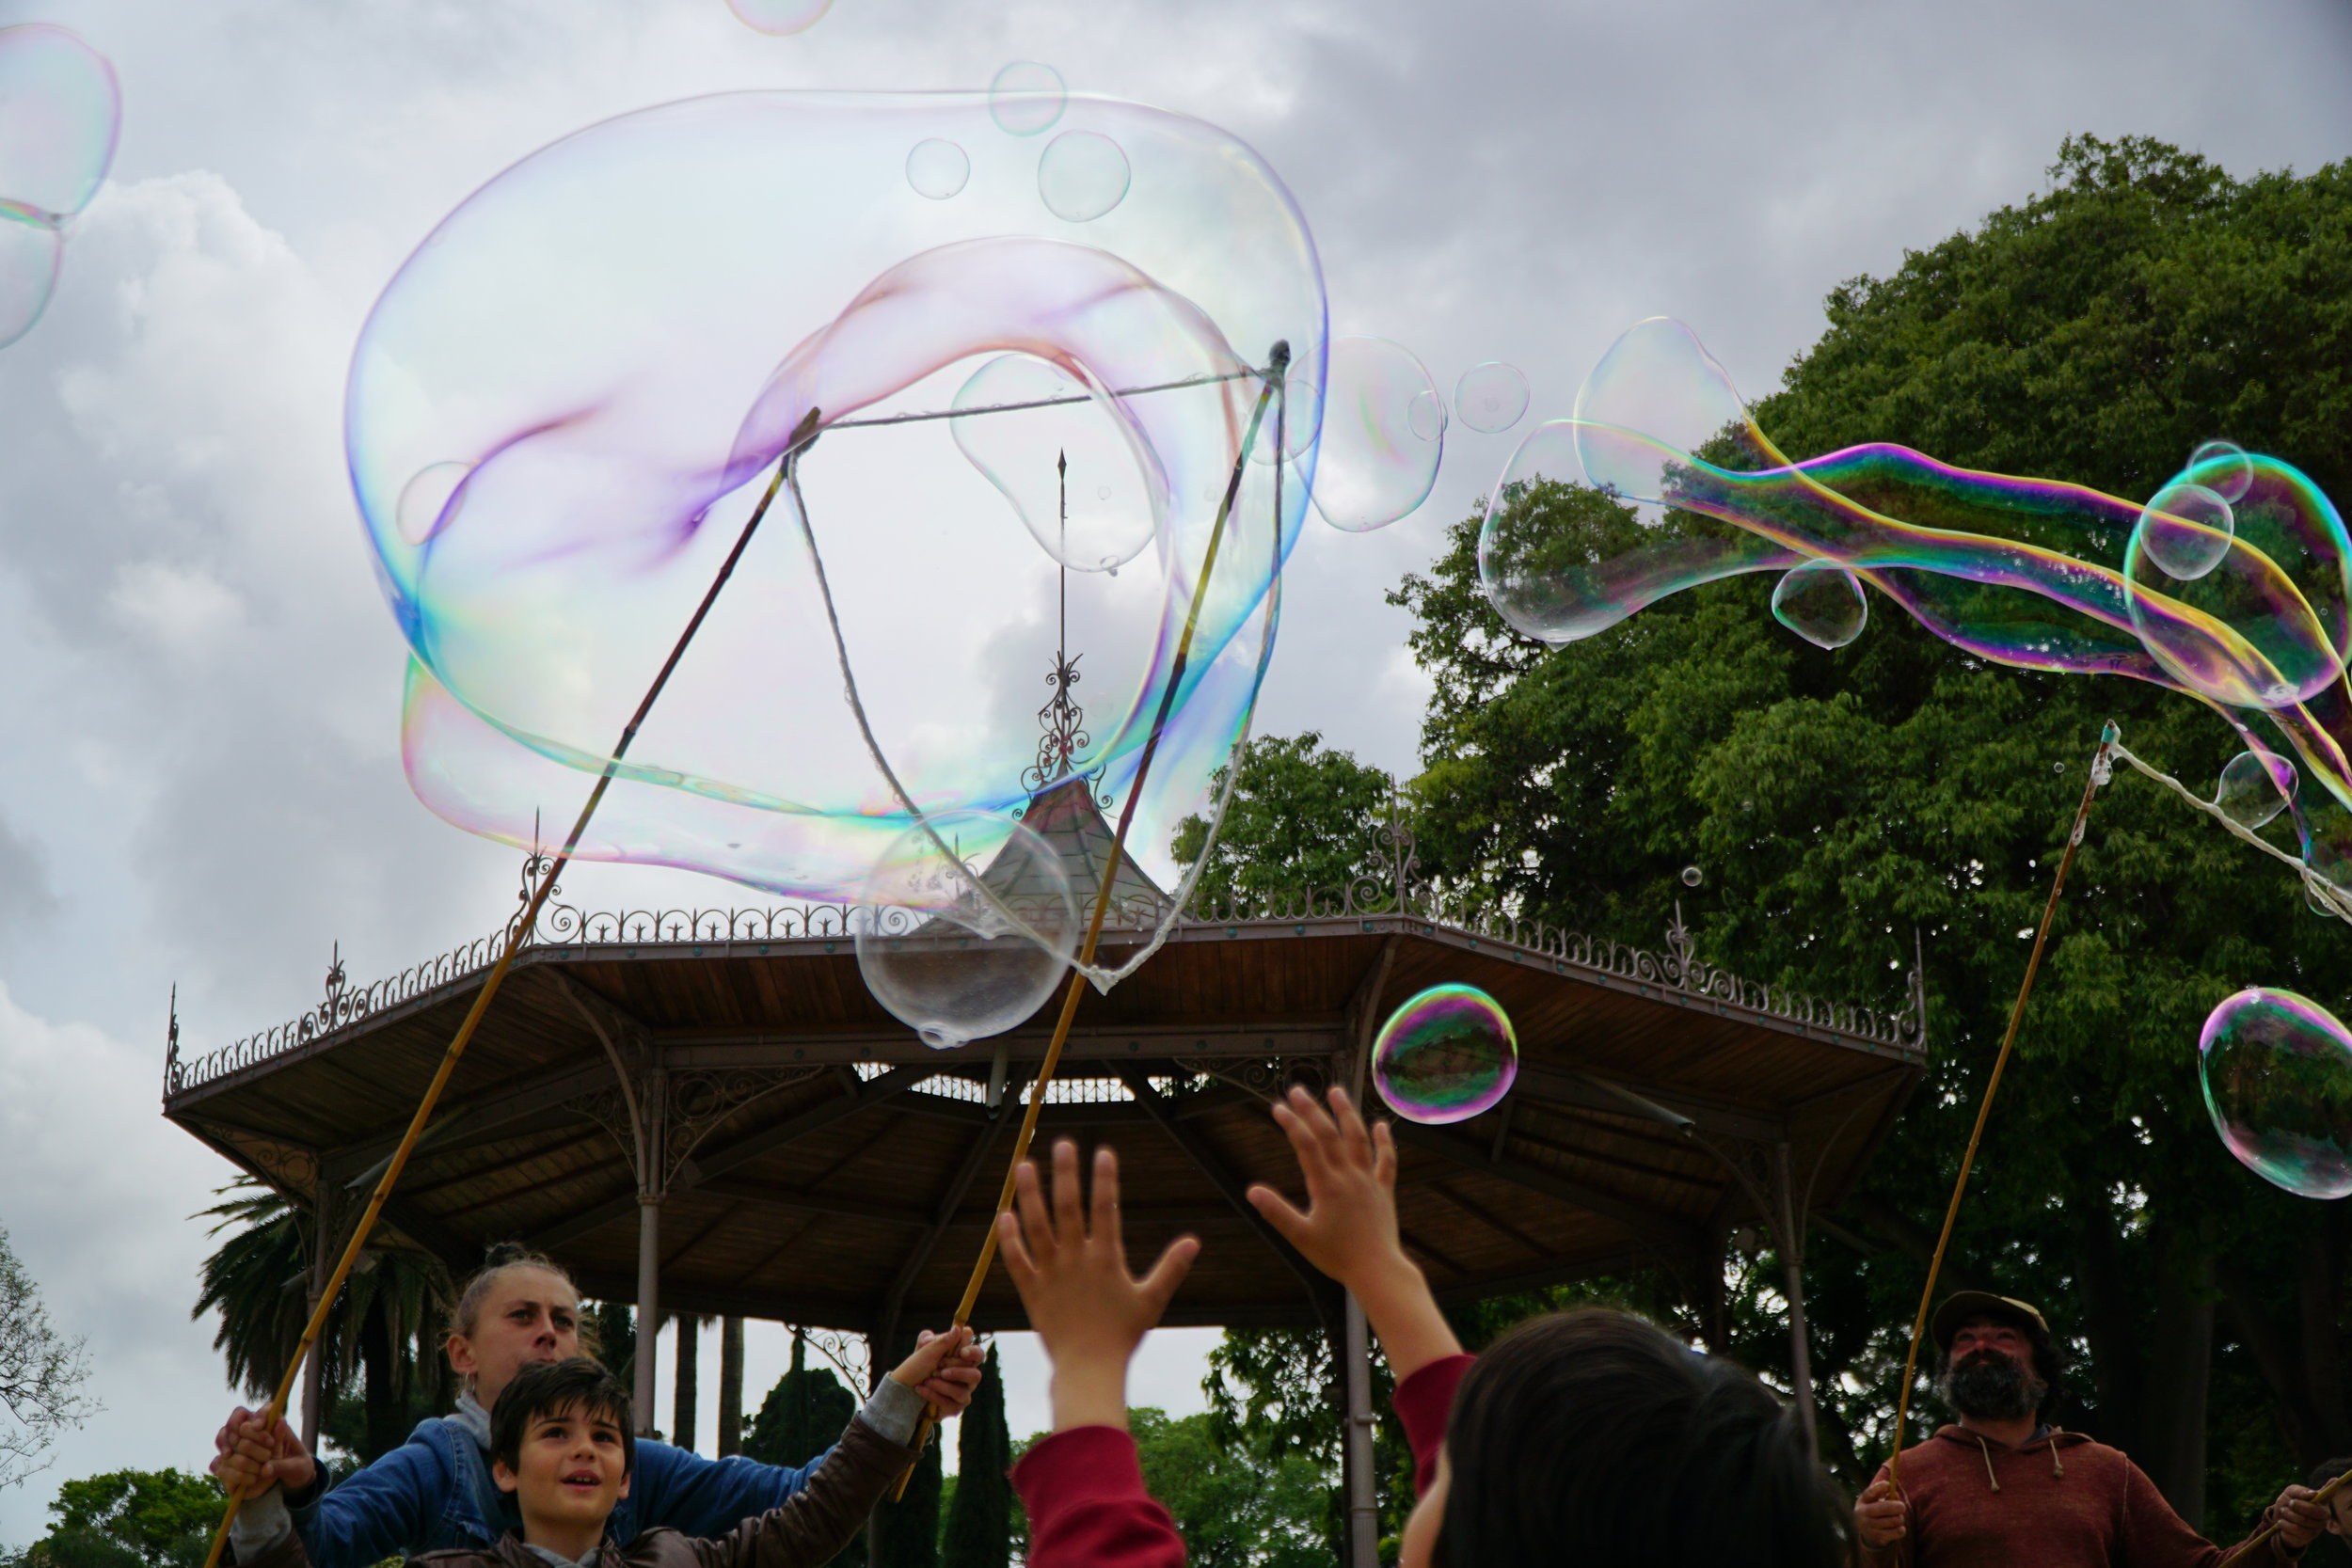 Catching Bubbles 4/30/2017 - I journeyed through a park today and noticed children catching bubbles. The street vendor used two pieces of wooden rods accompanied with rope to manifest these large bubbles.The local children in  joyful jamboree, jumped and jammed to one another's jovial praises. Also bringing me joy.It reminded me of a time when I was also their age and could let the fluid motions of colors in 3D form provide vast entertainment.I was reminded of how the simple things in life can bring happiness to many and how I neglected the blessings of my five senses.